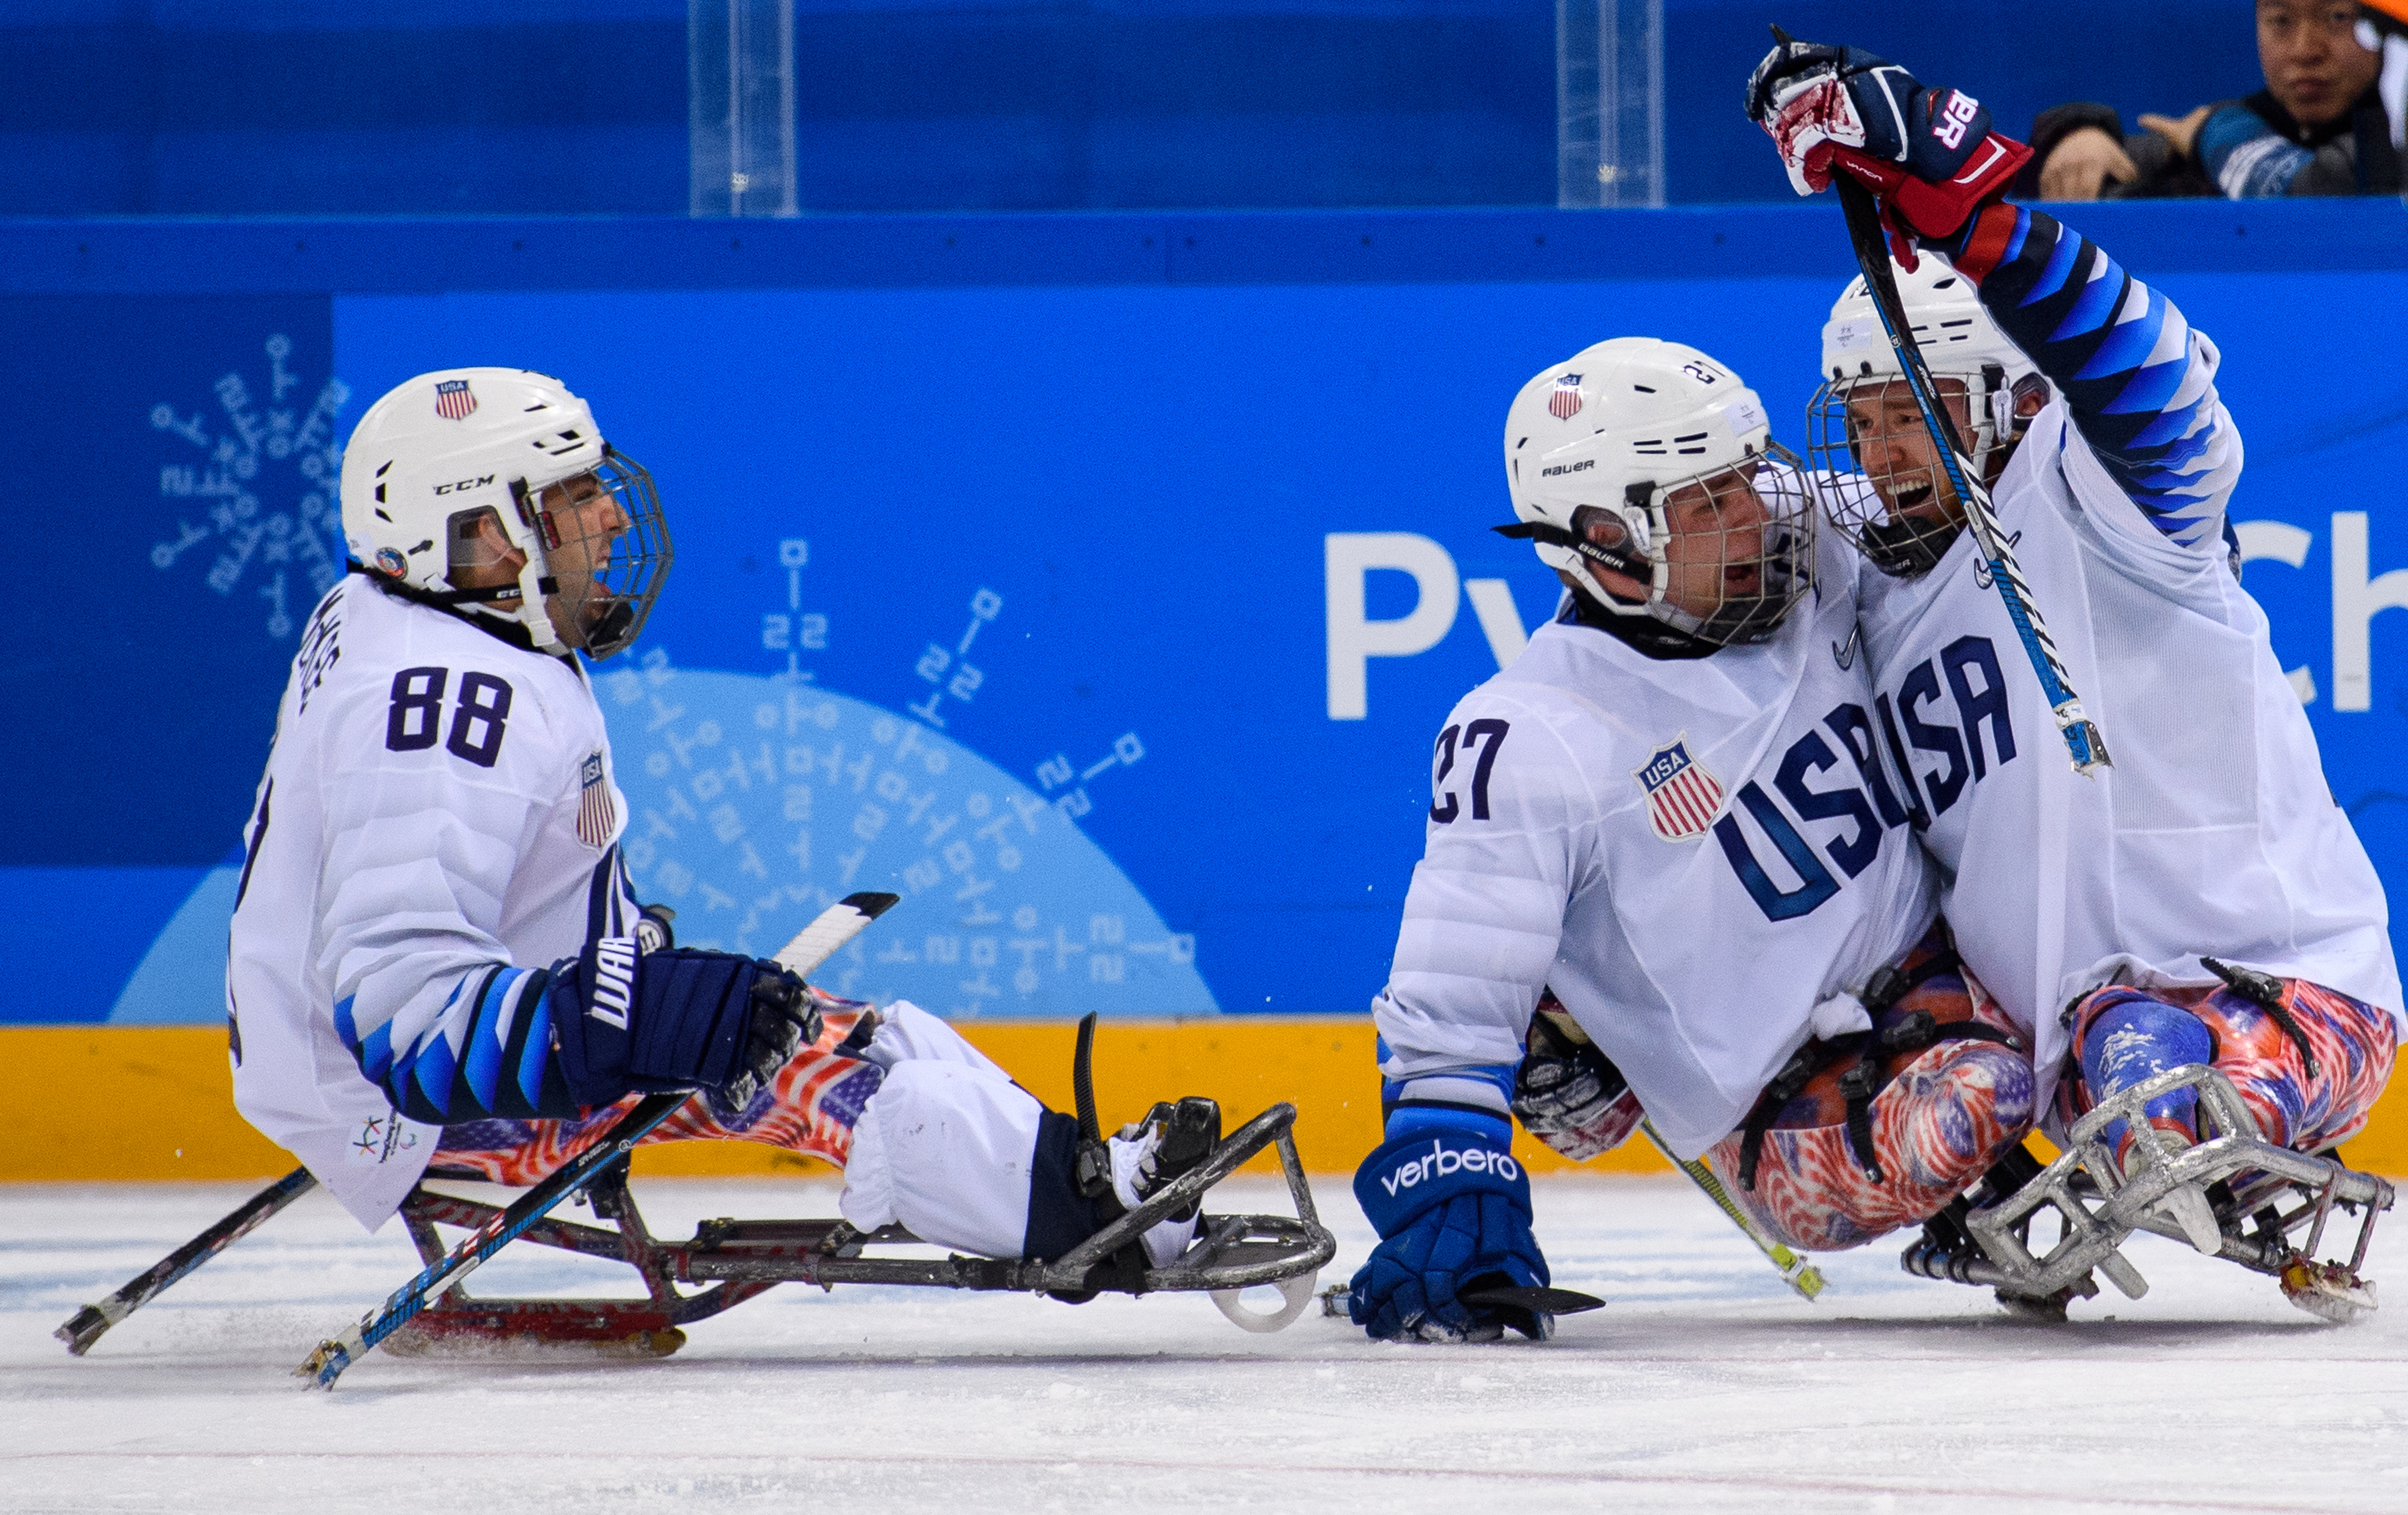 Hockey: history of development. History of the World Hockey Championships